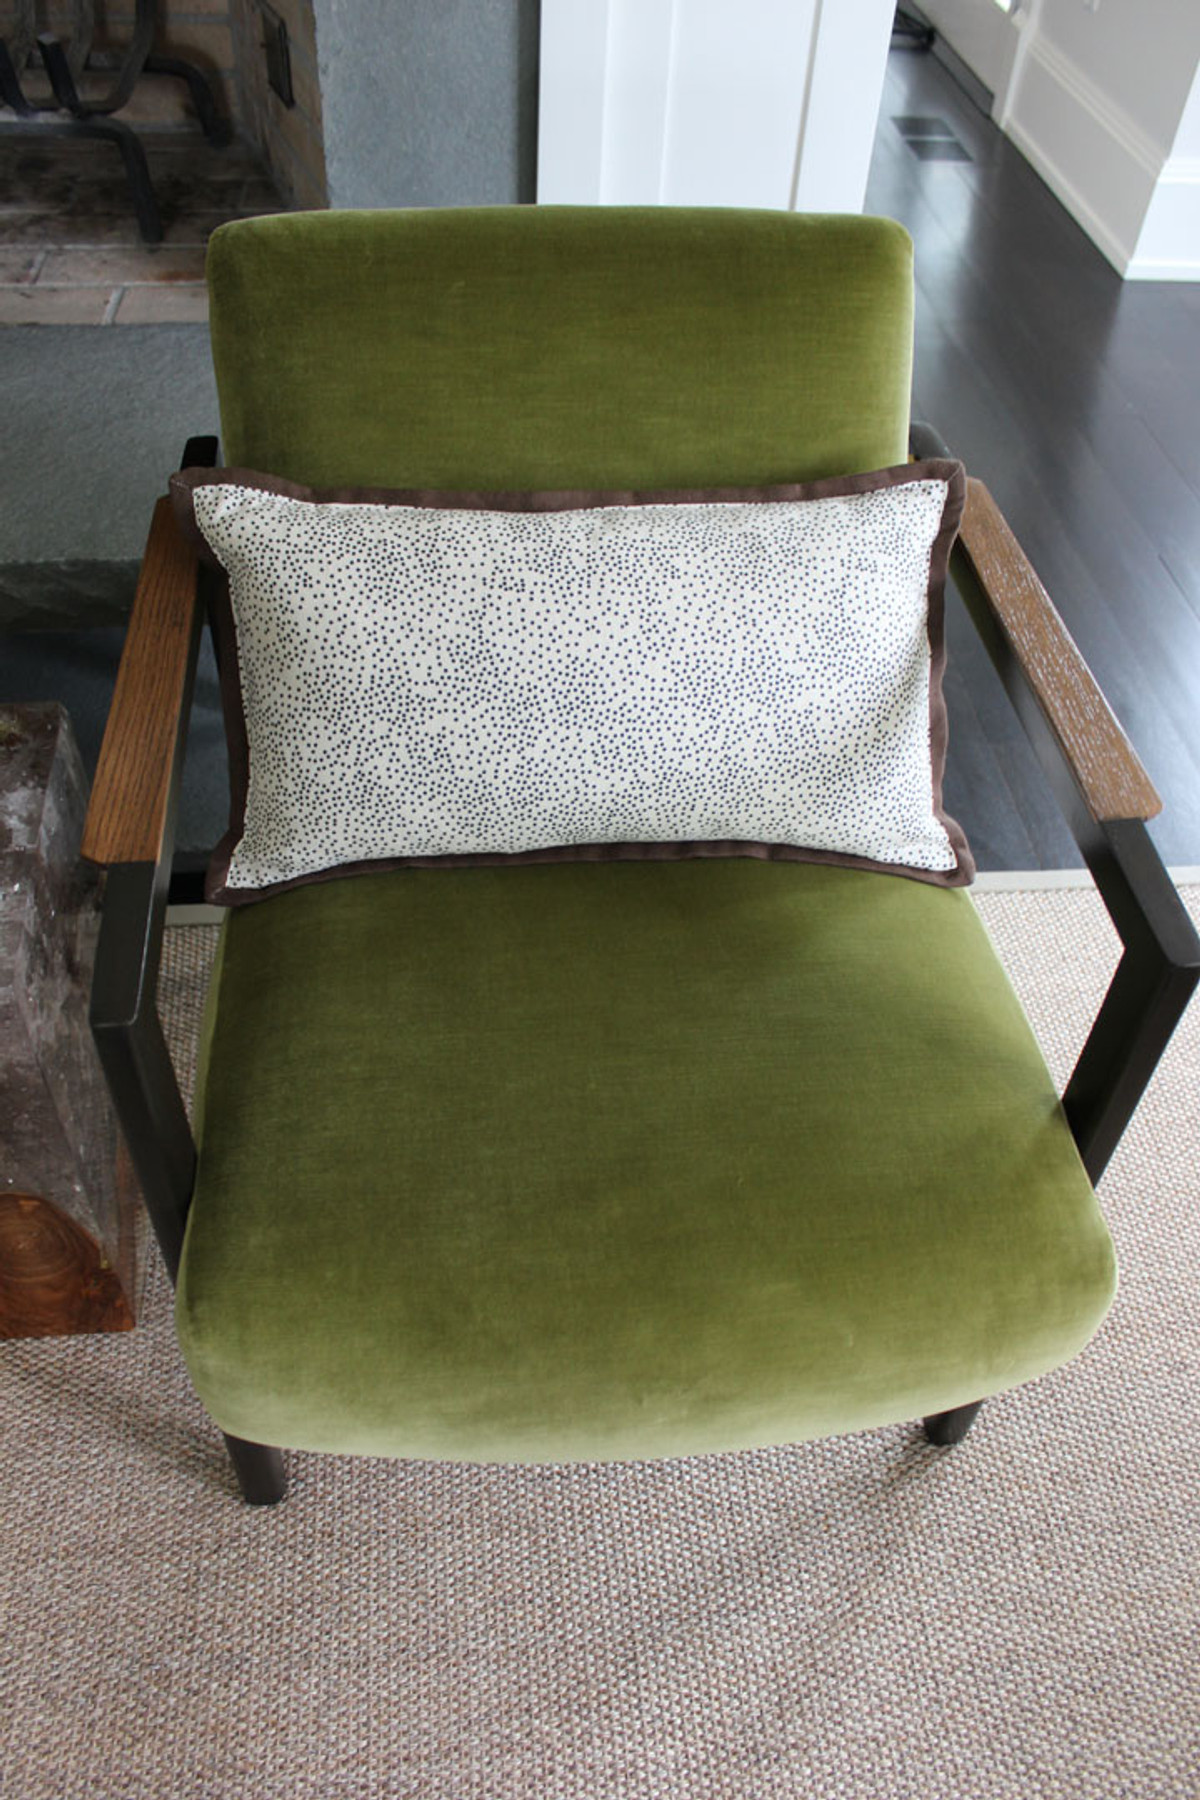 ... Chairs In Holly Hunt Vanity Fair In Fresh. Custom Pillows By Lynn Chalk  In Kelly ...